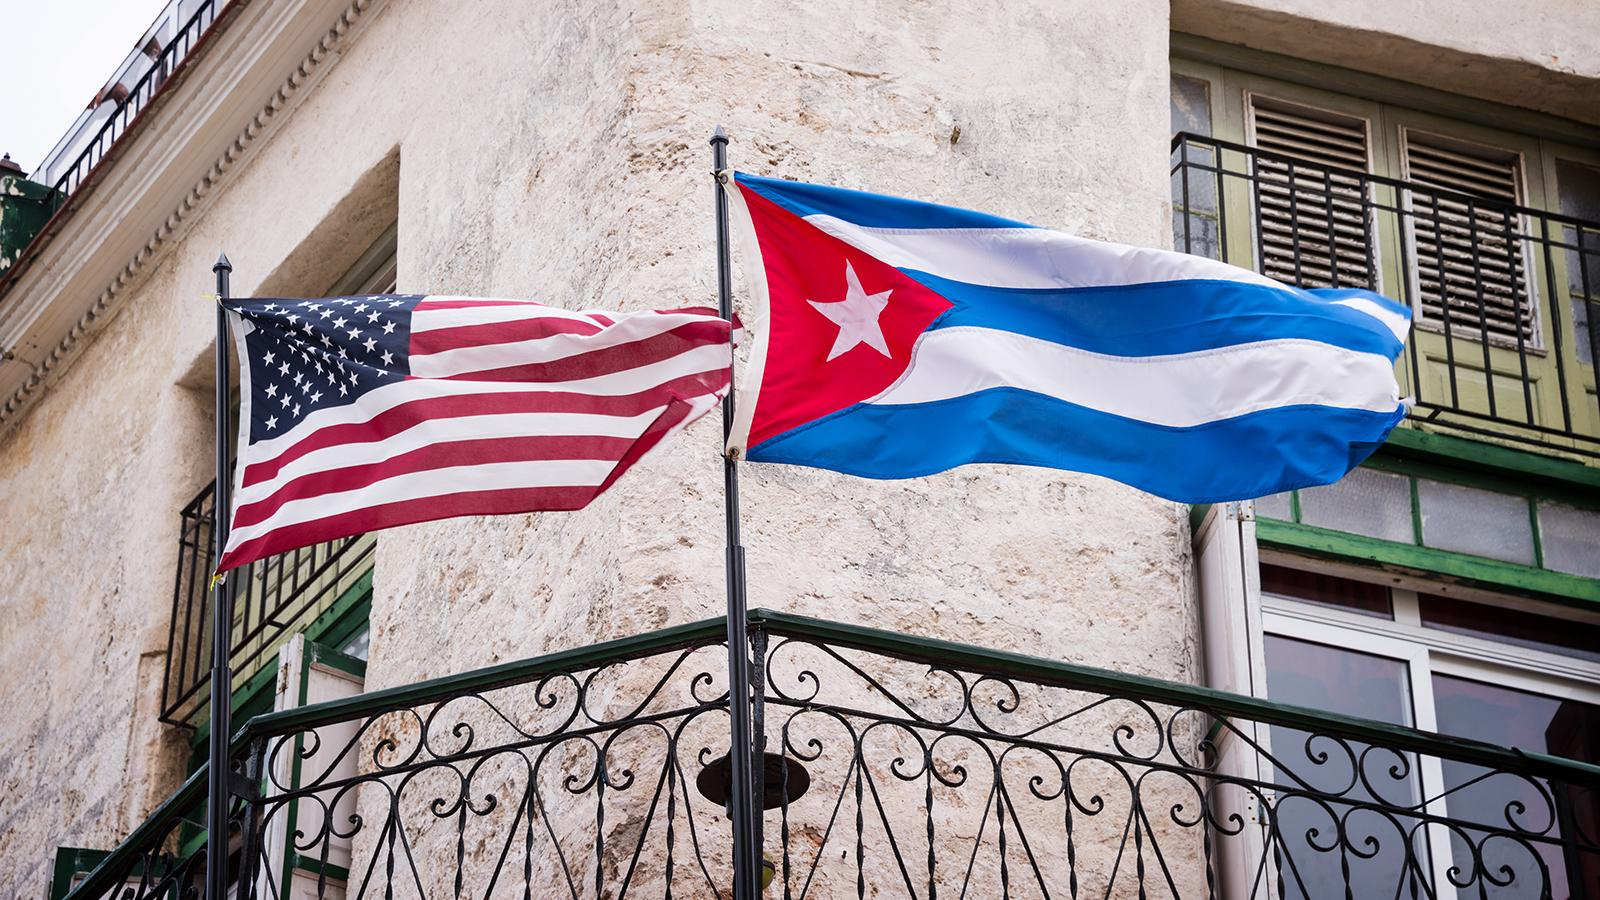 Legislation To Lift Cuba Travel Restrictions Introduced In Congress